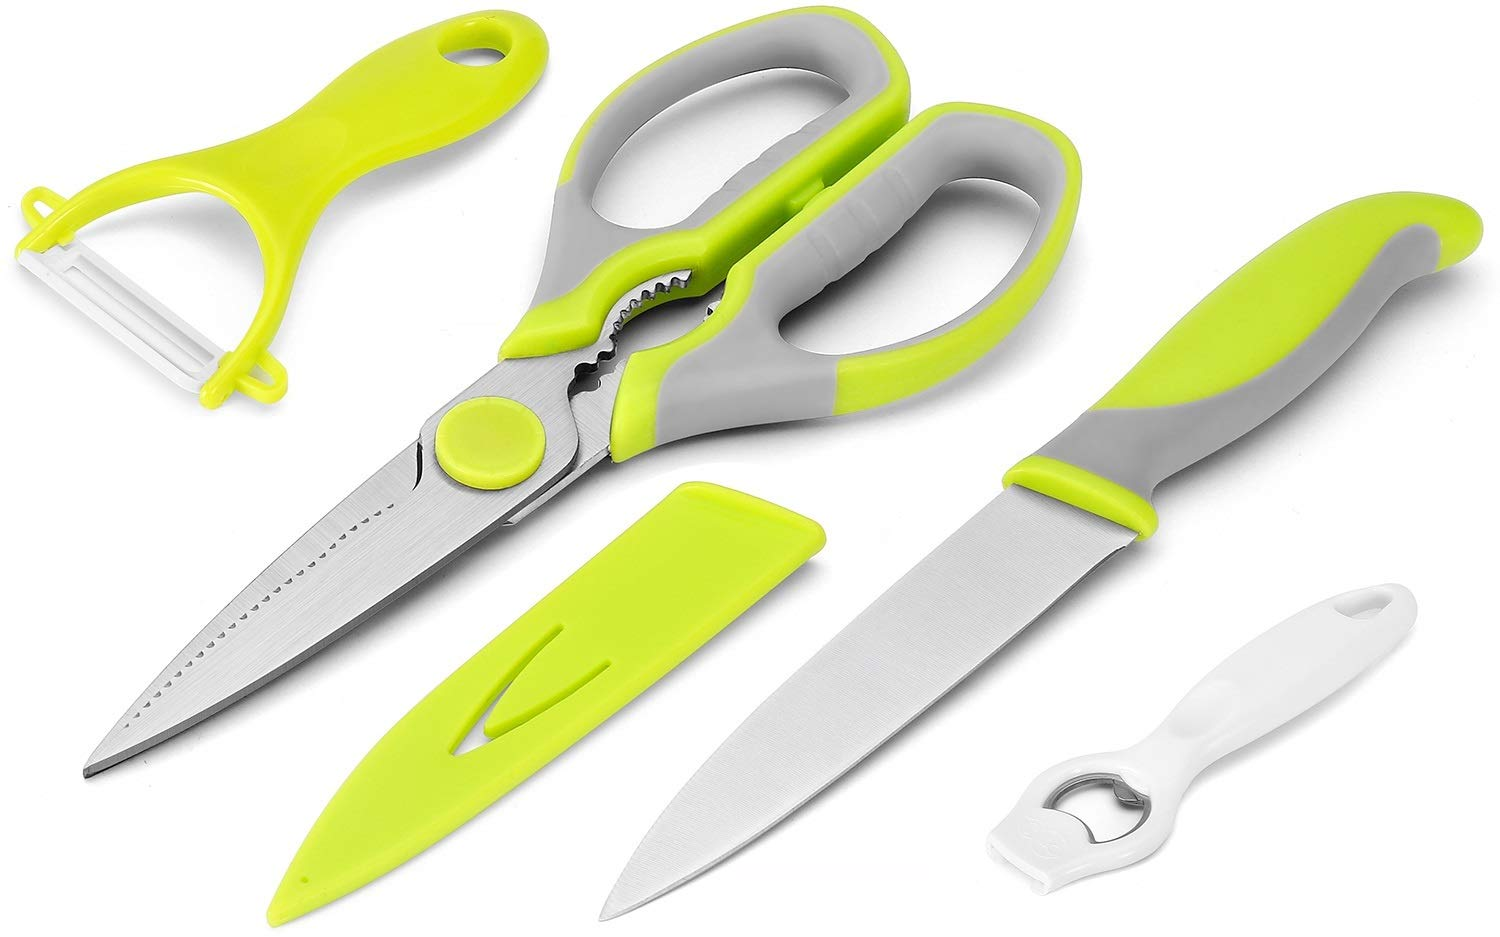 Kitchen Scissors 4 Pieces Set WELLSTAR, Heavy Duty Multi-Purpose Food Shears, Ultra Sharp Utility Knife with Safety Blade Cover, Ceramic Peeler and Bottle Opener, Small Kitchen tools Set of 4 by WELLSTAR